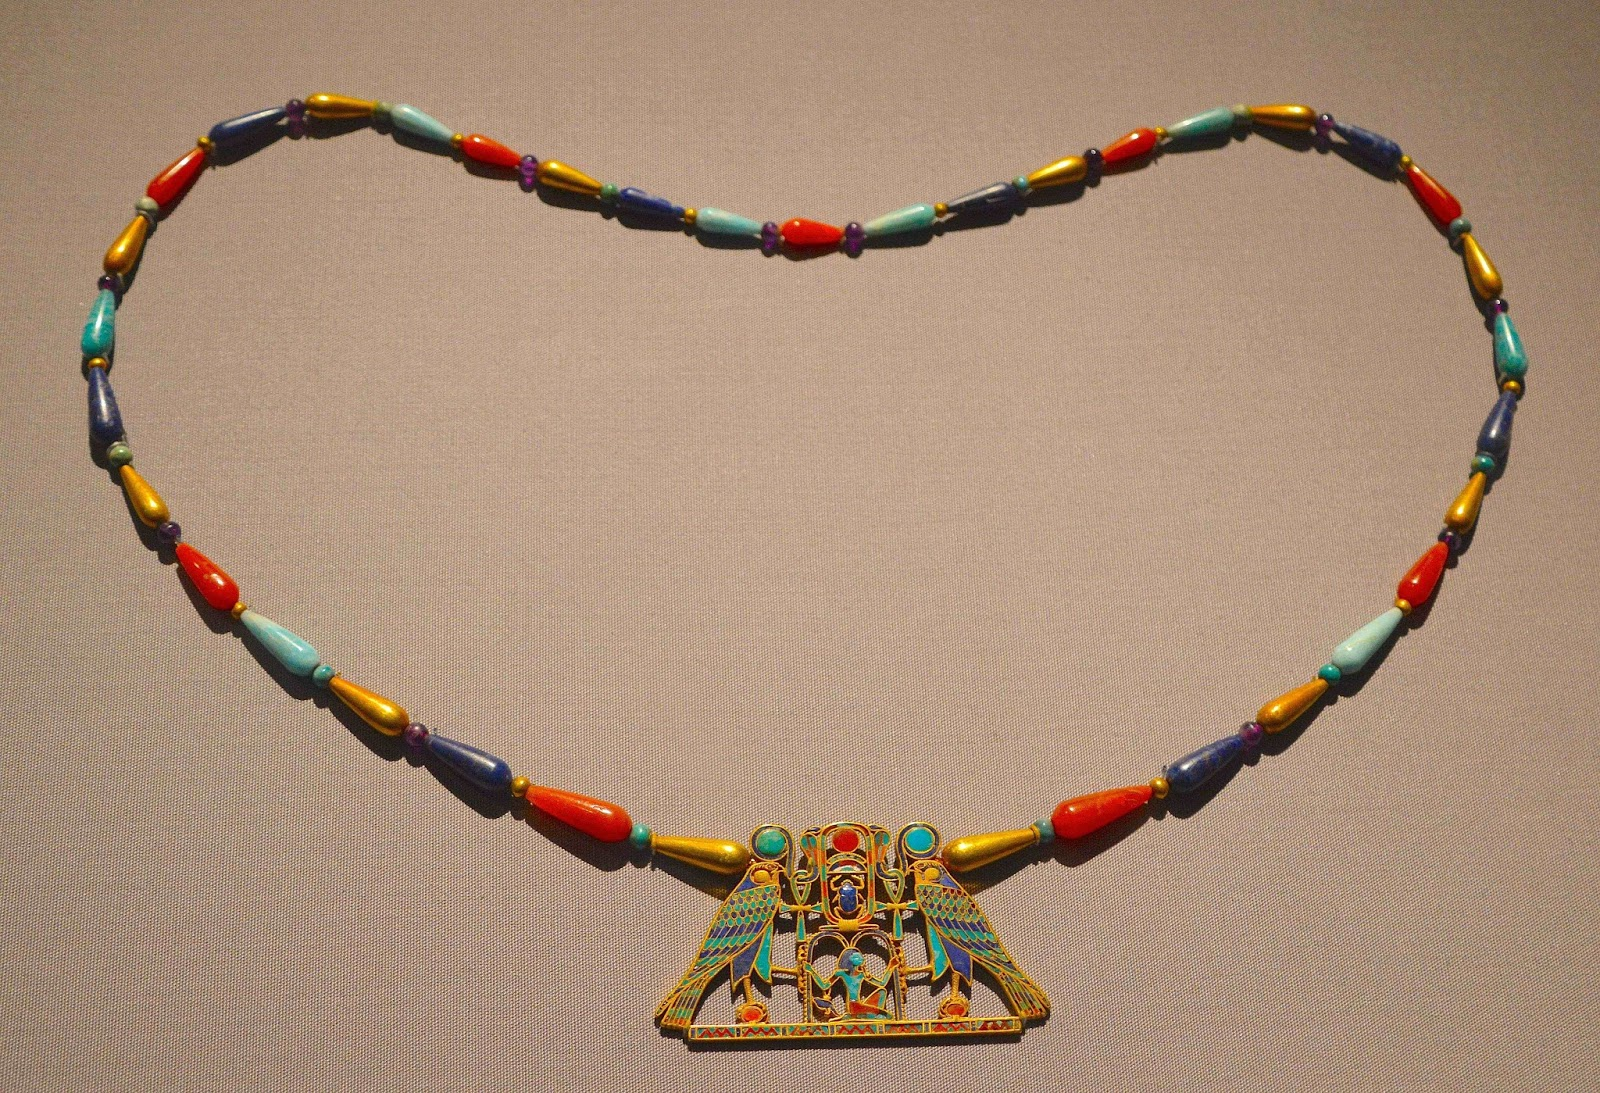 Exhibition Shell Necklace : Artsnfood met museum s ancient egypt the middle kingdom